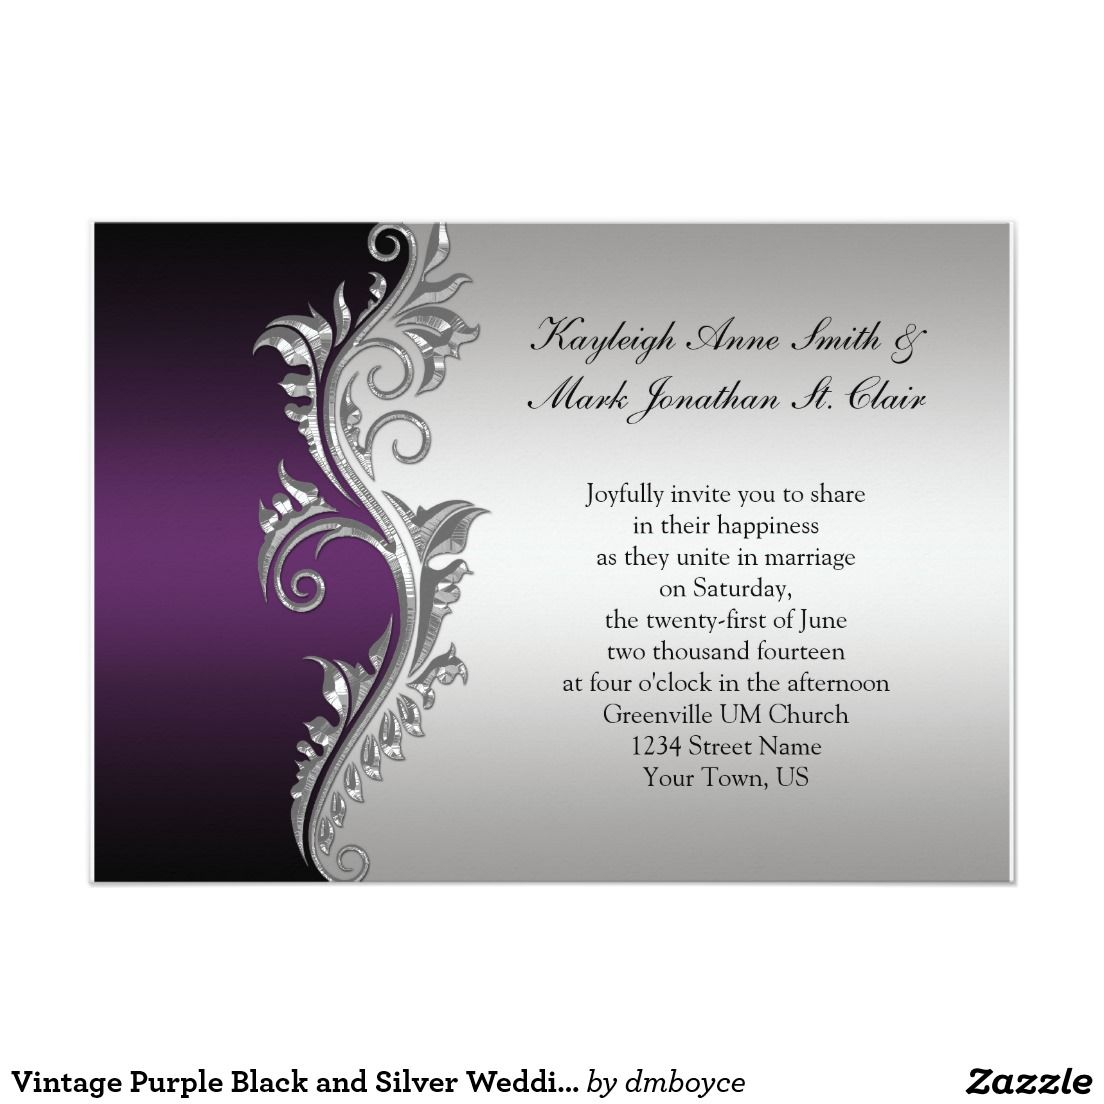 Vintage Purple Black and Silver Wedding Invitation | wedding ...